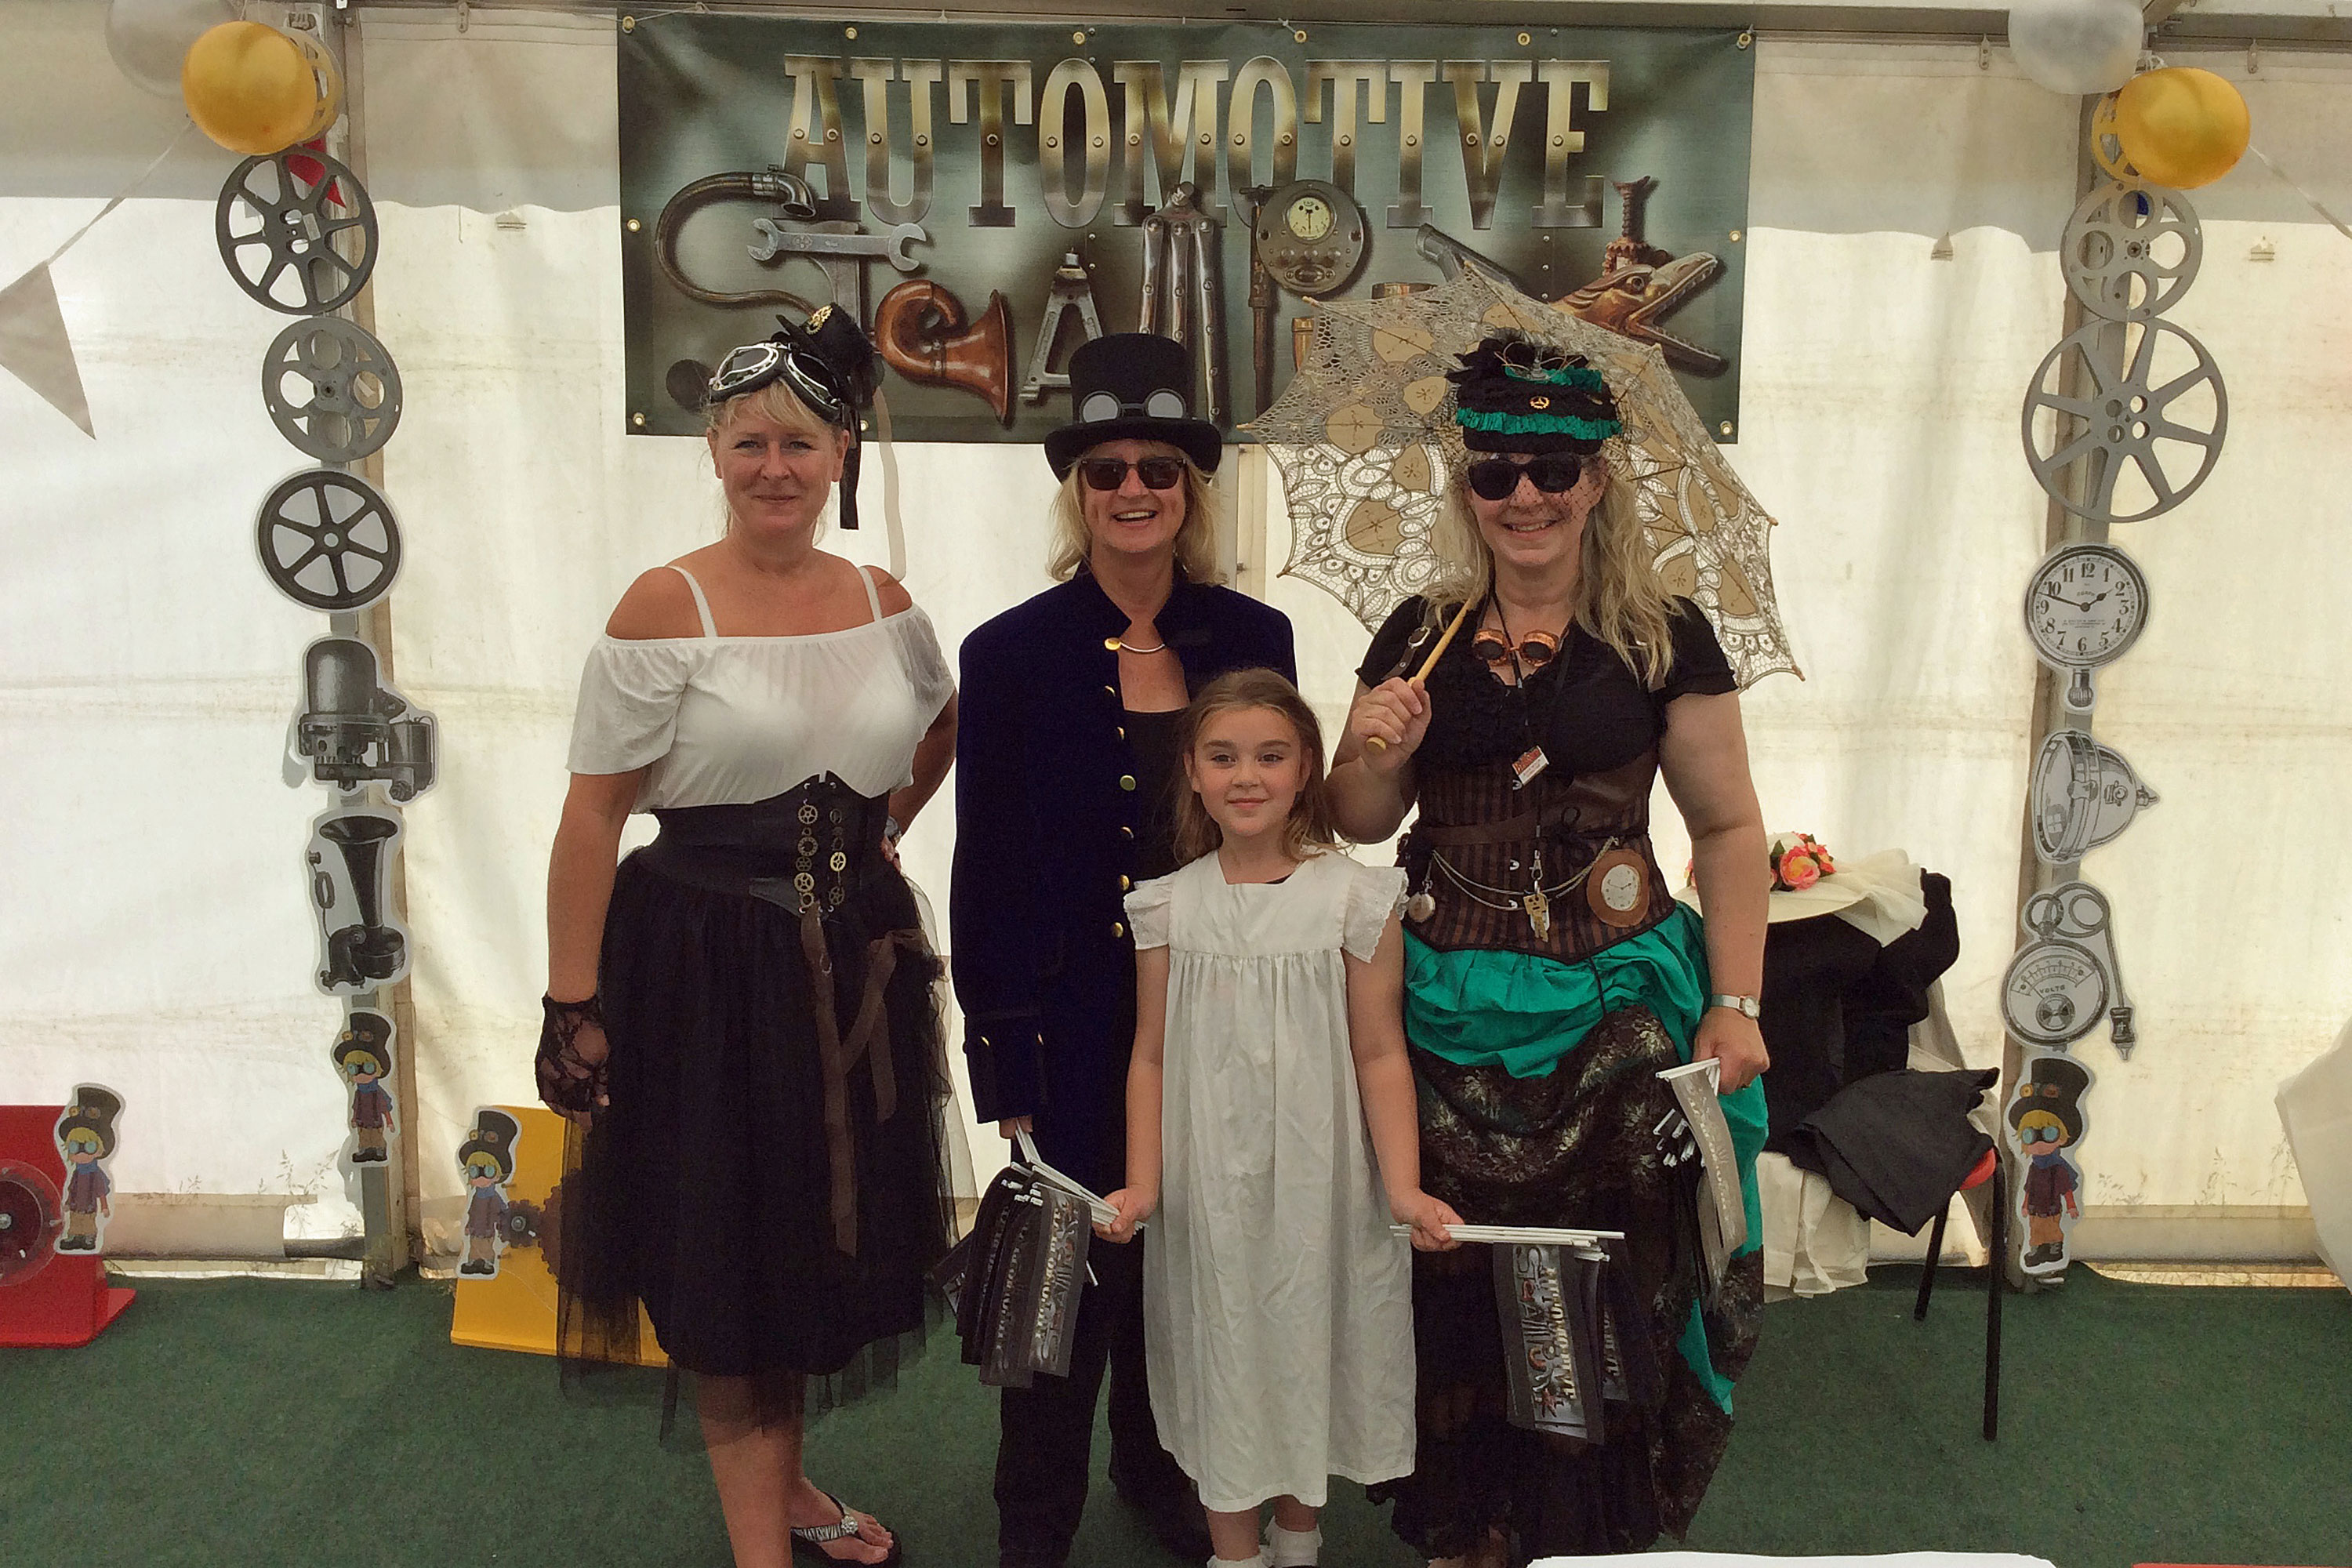 National Motor Museum staff in steampunk costume at the National Motor Museum